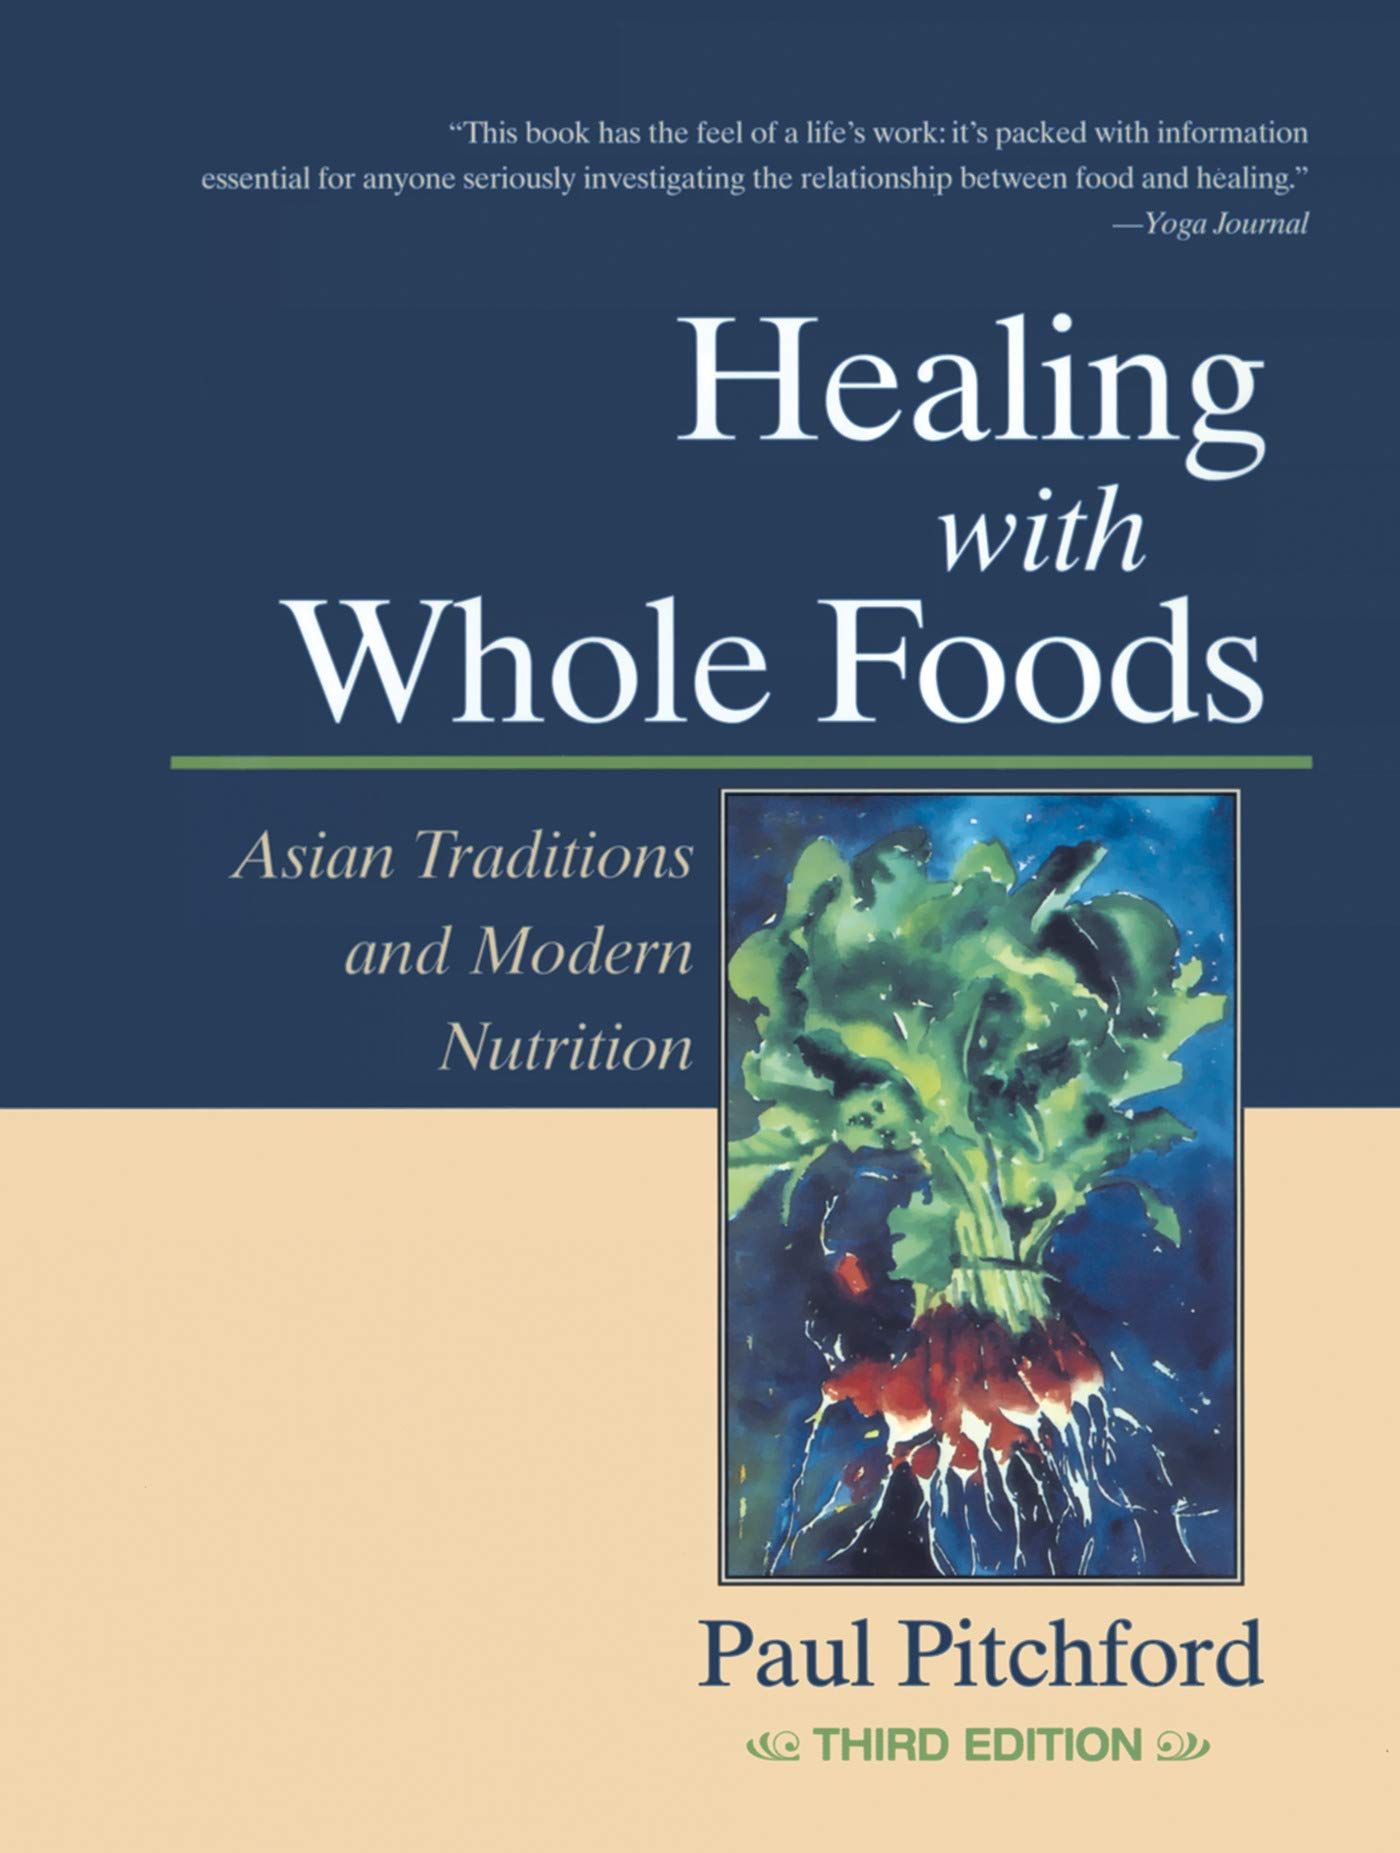 """healing with whole foods: asian traditions and modern nutrition - By Paul PitchfordUsed as a reference by students of acupuncture, this is a hefty, truly comprehensive guide to the theory and healing power of Chinese medicine. It's also a primer on nutrition—including facts about green foods, such as spirulina and blue-green algae, and the """"regeneration diets"""" used by cancer patients and arthritics—along with an inspiring cookbook with more than 300 mostly vegetarian, nutrient-packed recipes.The information on Chinese medicine is useful for helping to diagnose health imbalances, especially nascent illnesses. It's smartly paired with the whole-foods program because the Chinese have attributed various health-balancing properties to foods, so you can tailor your diet to help alleviate symptoms of illness. For example, Chinese medicine dictates that someone with low energy and a pale complexion (a yin deficiency) would benefit from avoiding bitter foods and increasing """"sweet"""" foods such as soy, black sesame seeds, parsnips, rice, and oats. (Note that the Chinese definition of sweet foods is much different from the American one!)Pitchford says in his dedication that he hopes the reader finds """"healing, awareness, and peace"""" from following his program. The diet is certainly acetic by American standards (no alcohol, caffeine, white flour, fried foods, or sugar, and a minimum of eggs and dairy) but the reasons he gives for avoiding these """"negative energy"""" foods are compelling. From the adrenal damage imparted by coffee to immune dysfunction brought on by excess refined sugar, Pitchford spurs you to rethink every dietary choice and its ultimate influence on your health. Without being alarmist, he adds dietary tips for protecting yourself against the dangers of modern life, including neutralizing damage from water fluoridation (thyroid and immune-system problems may result; fluoride is a carcinogen). There's further reading on food combining, female health, heart disease, preg"""